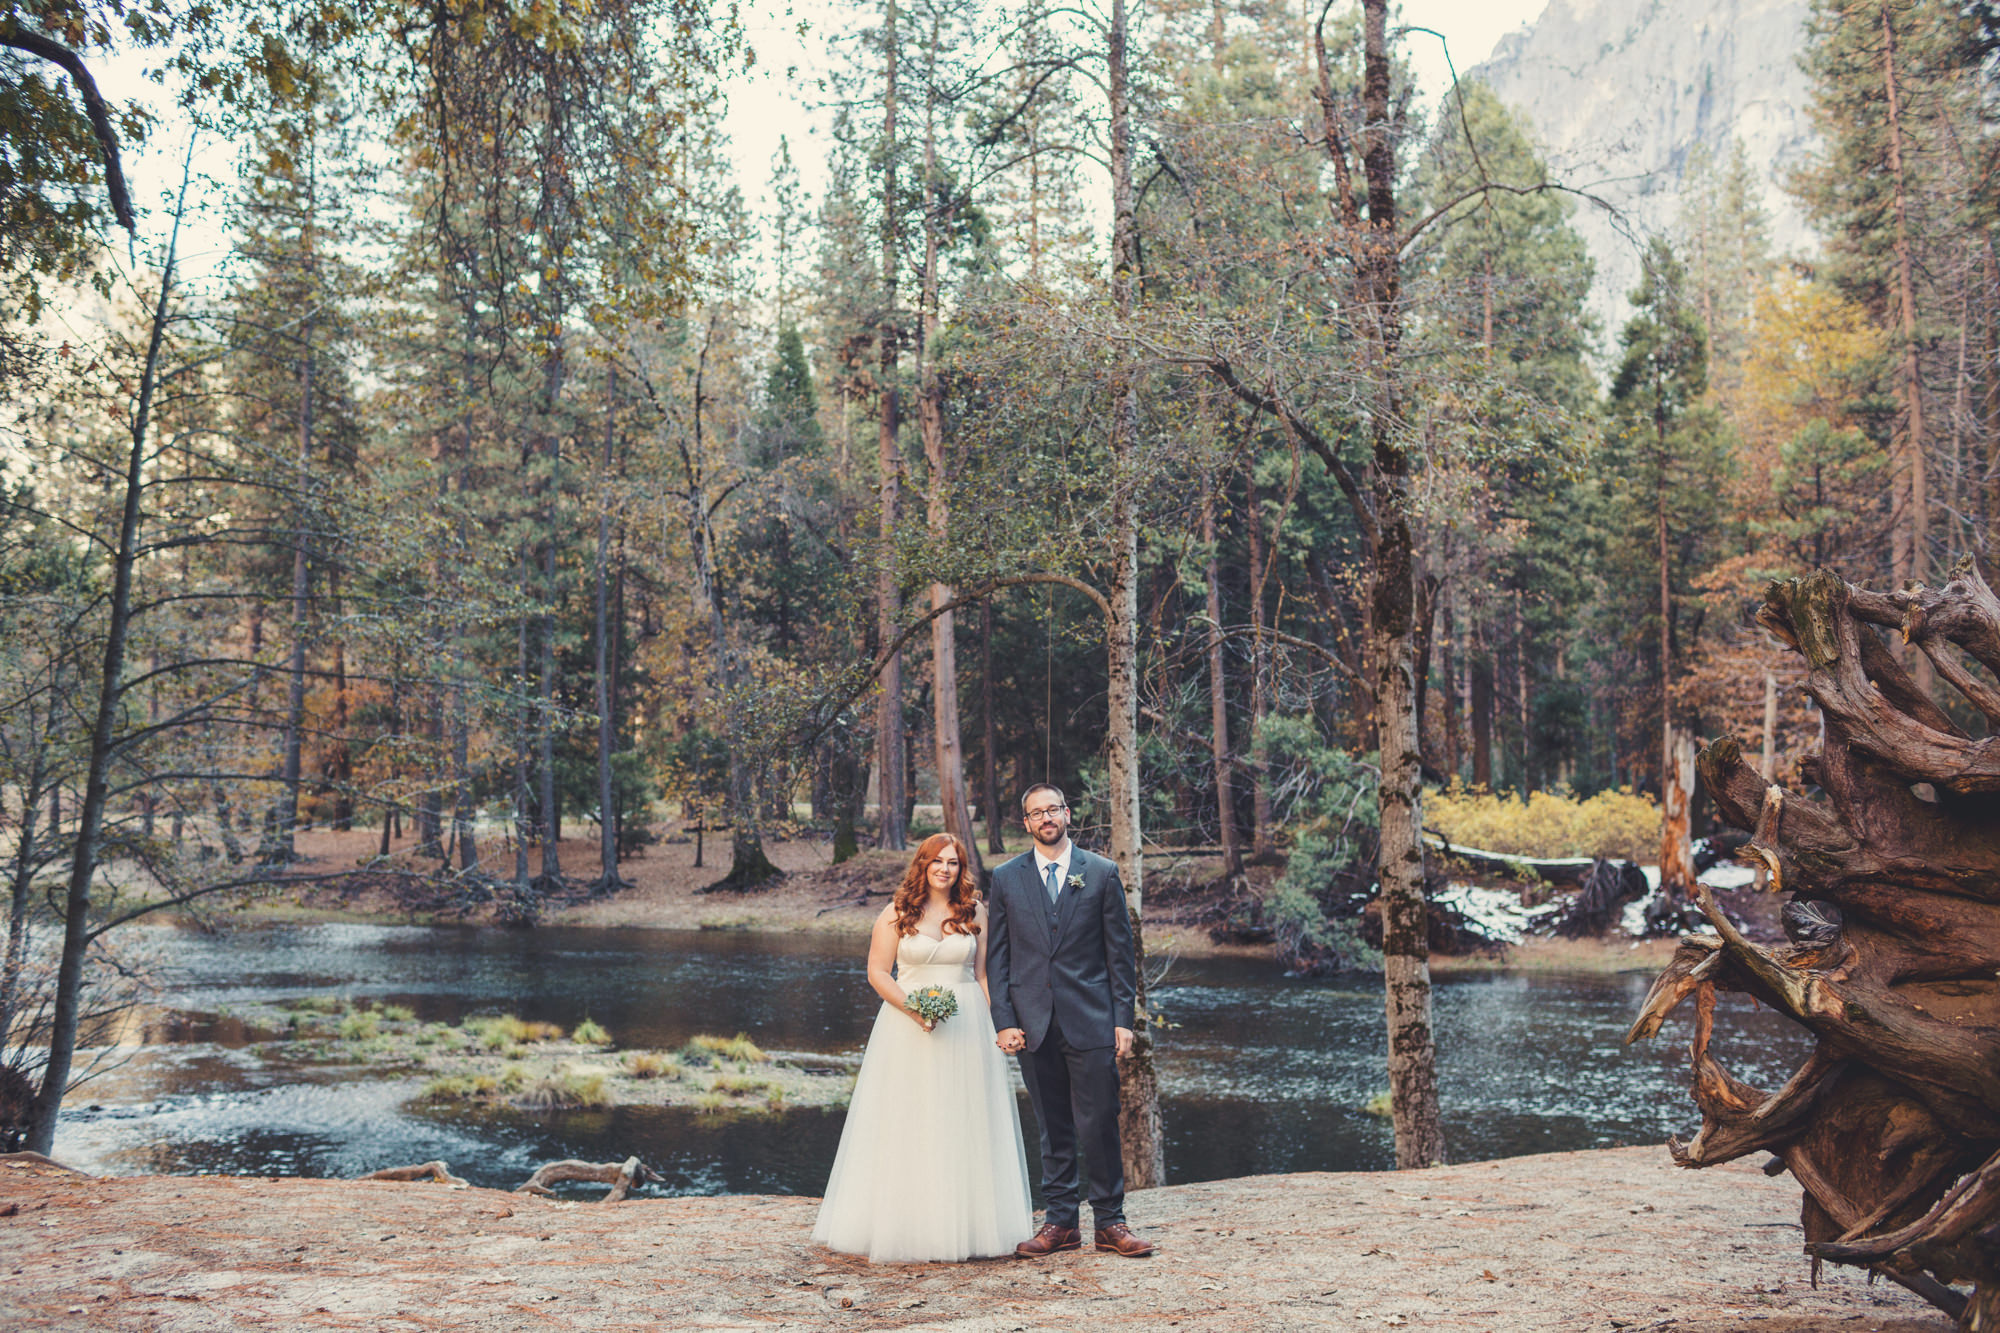 Yosemite wedding ©Anne-Claire Brun 54